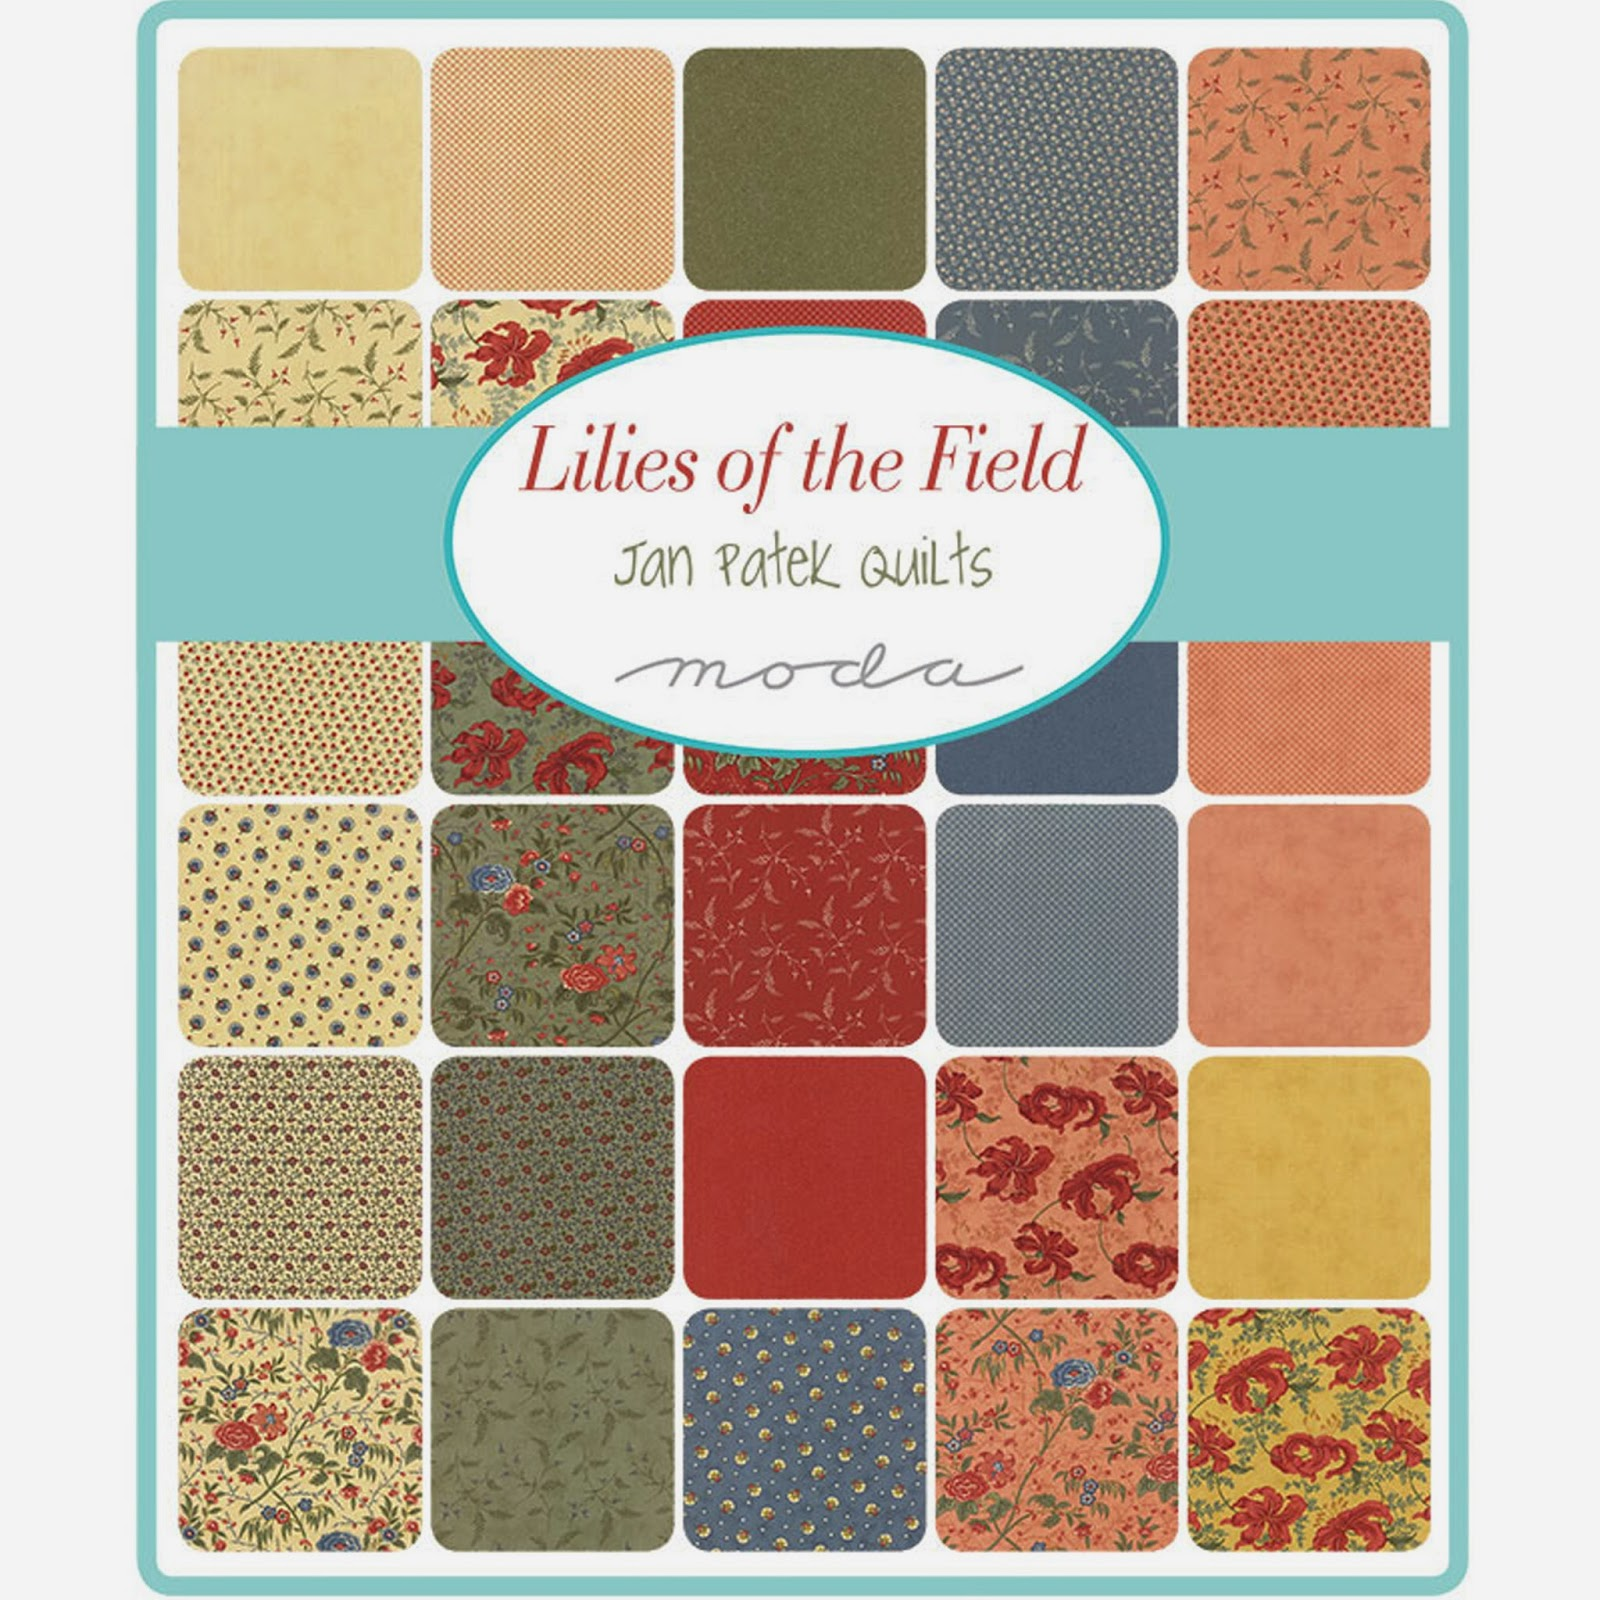 Moda LILIES OF THE FIELD Fabric by Jan Patek for Moda Fabrics